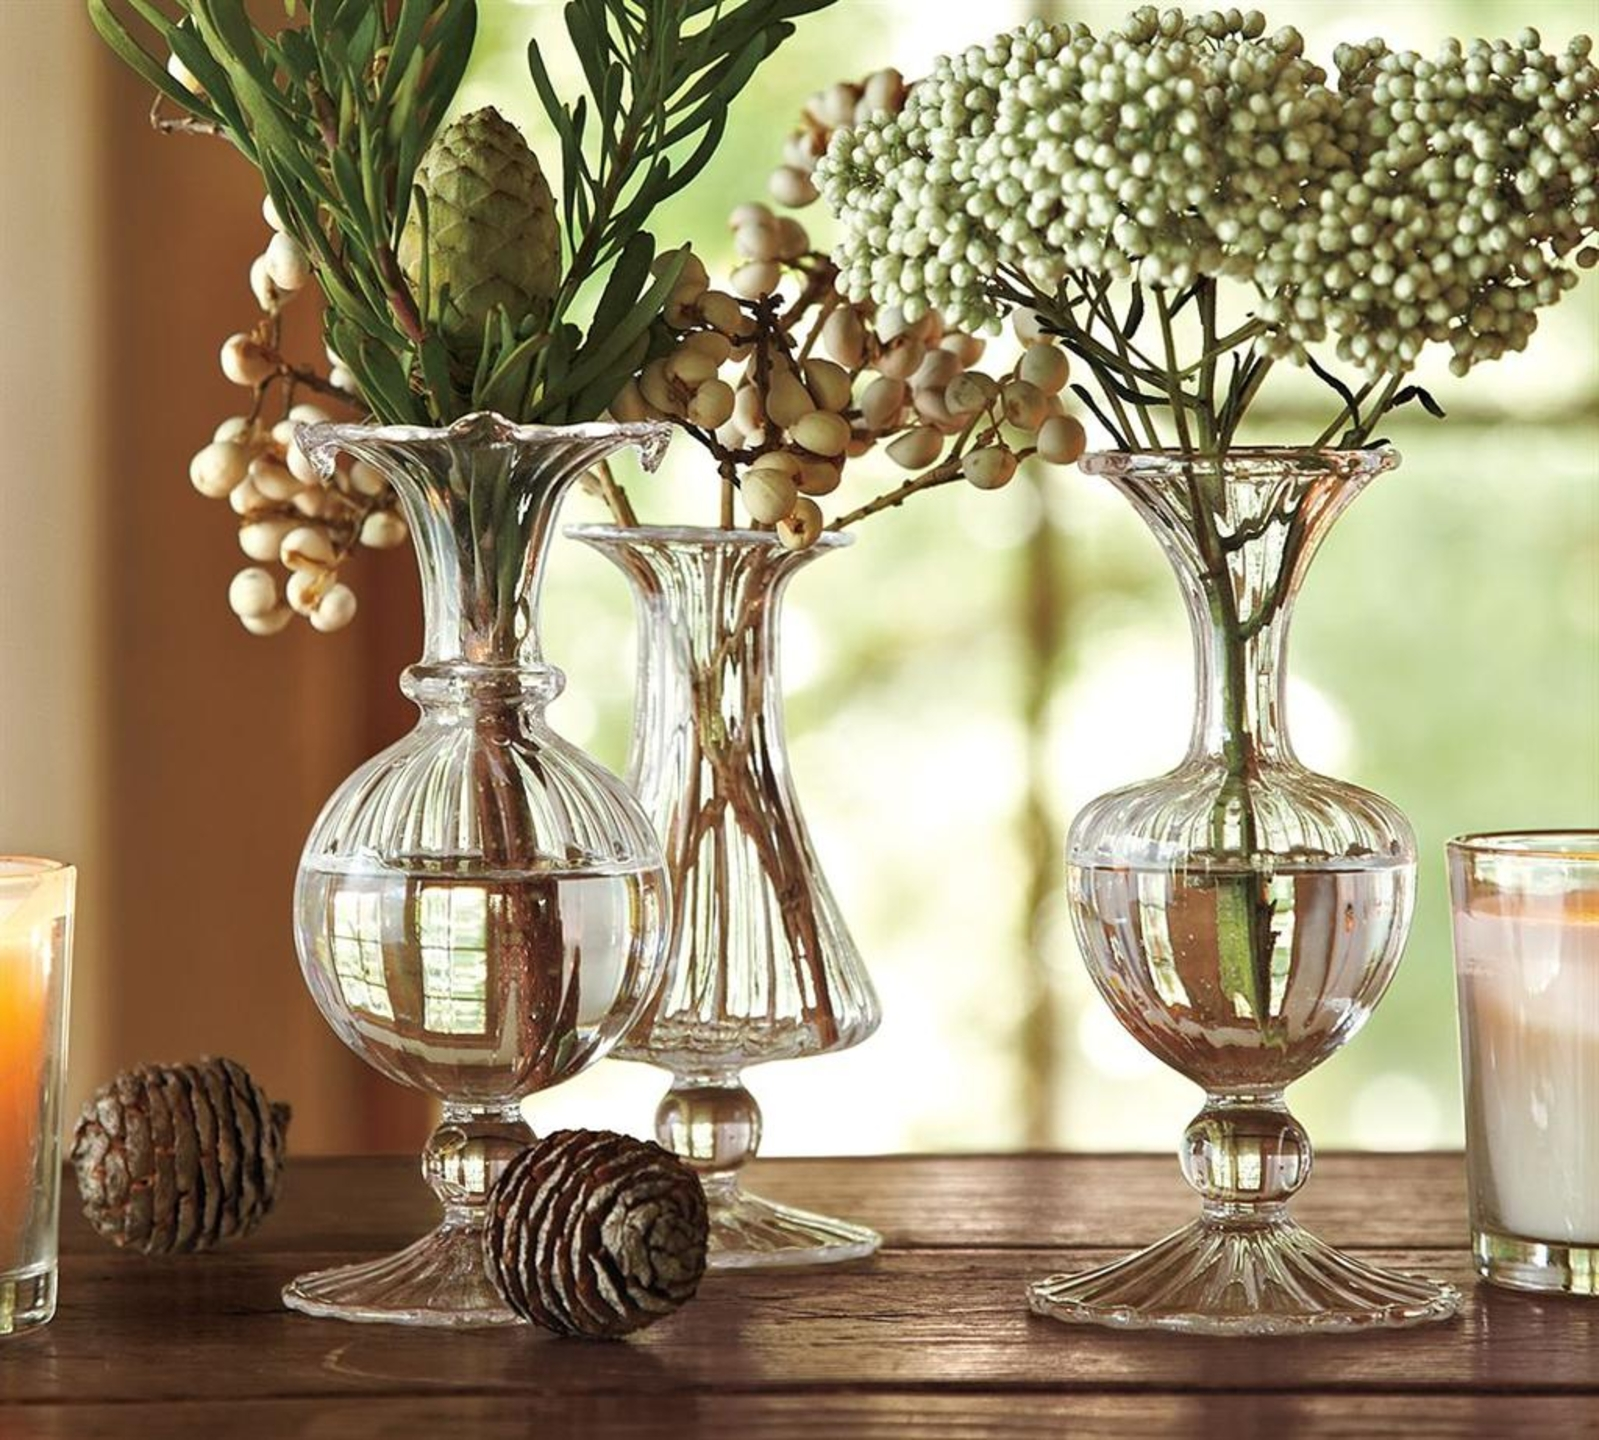 Flower Vase Ideas For Decorating Xmas Decor And Decorations For Your Home Armenian